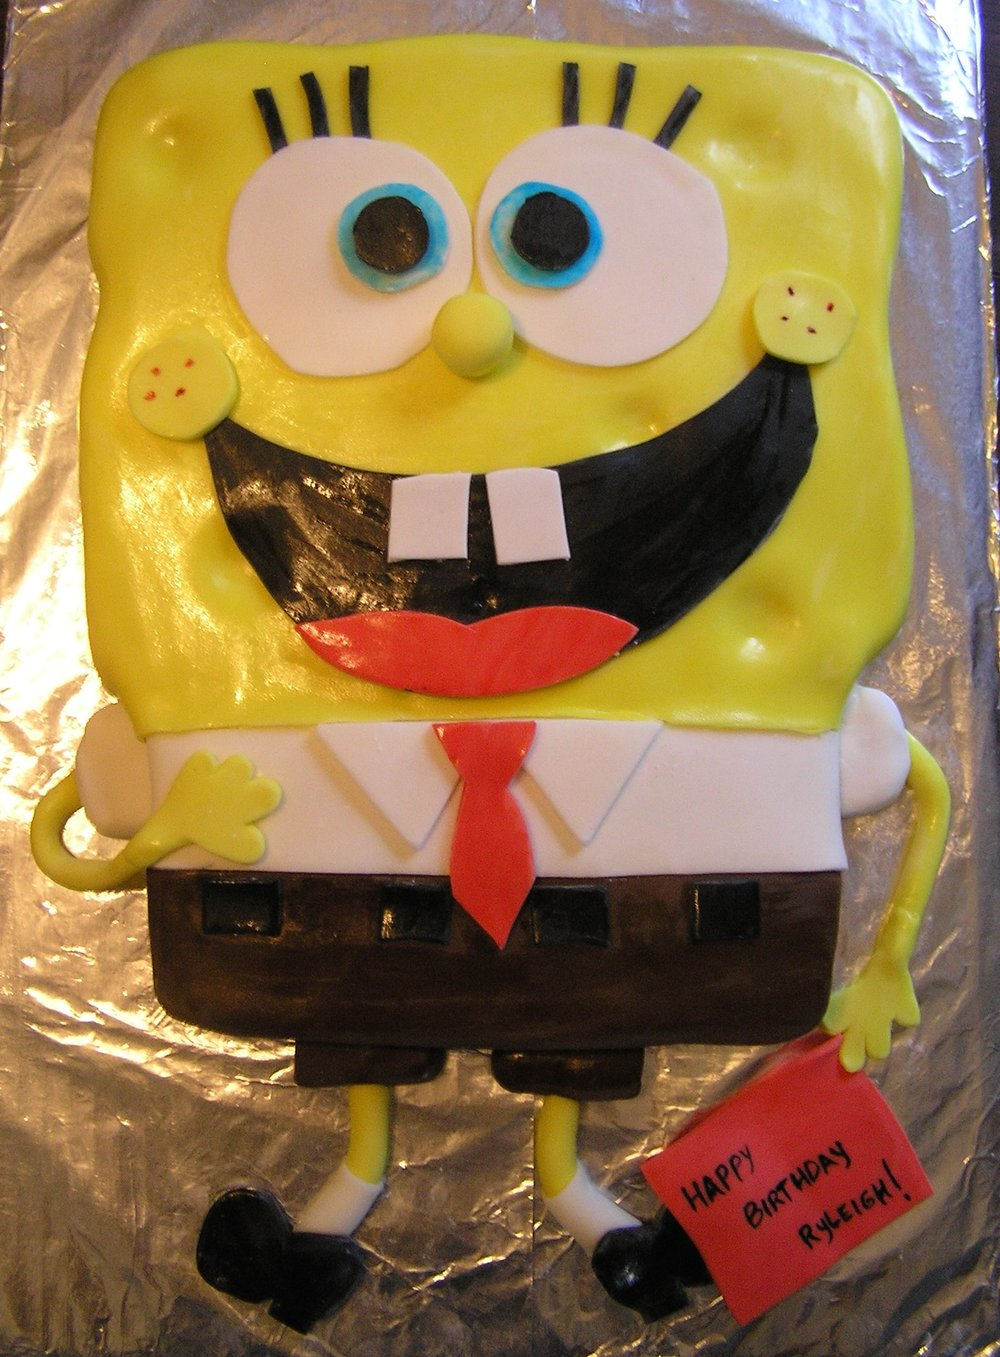 3) Spongebob Squarepants:  I was super proud of this one.  I sort of stepped back and decided that I was getting decent at this cake thing.